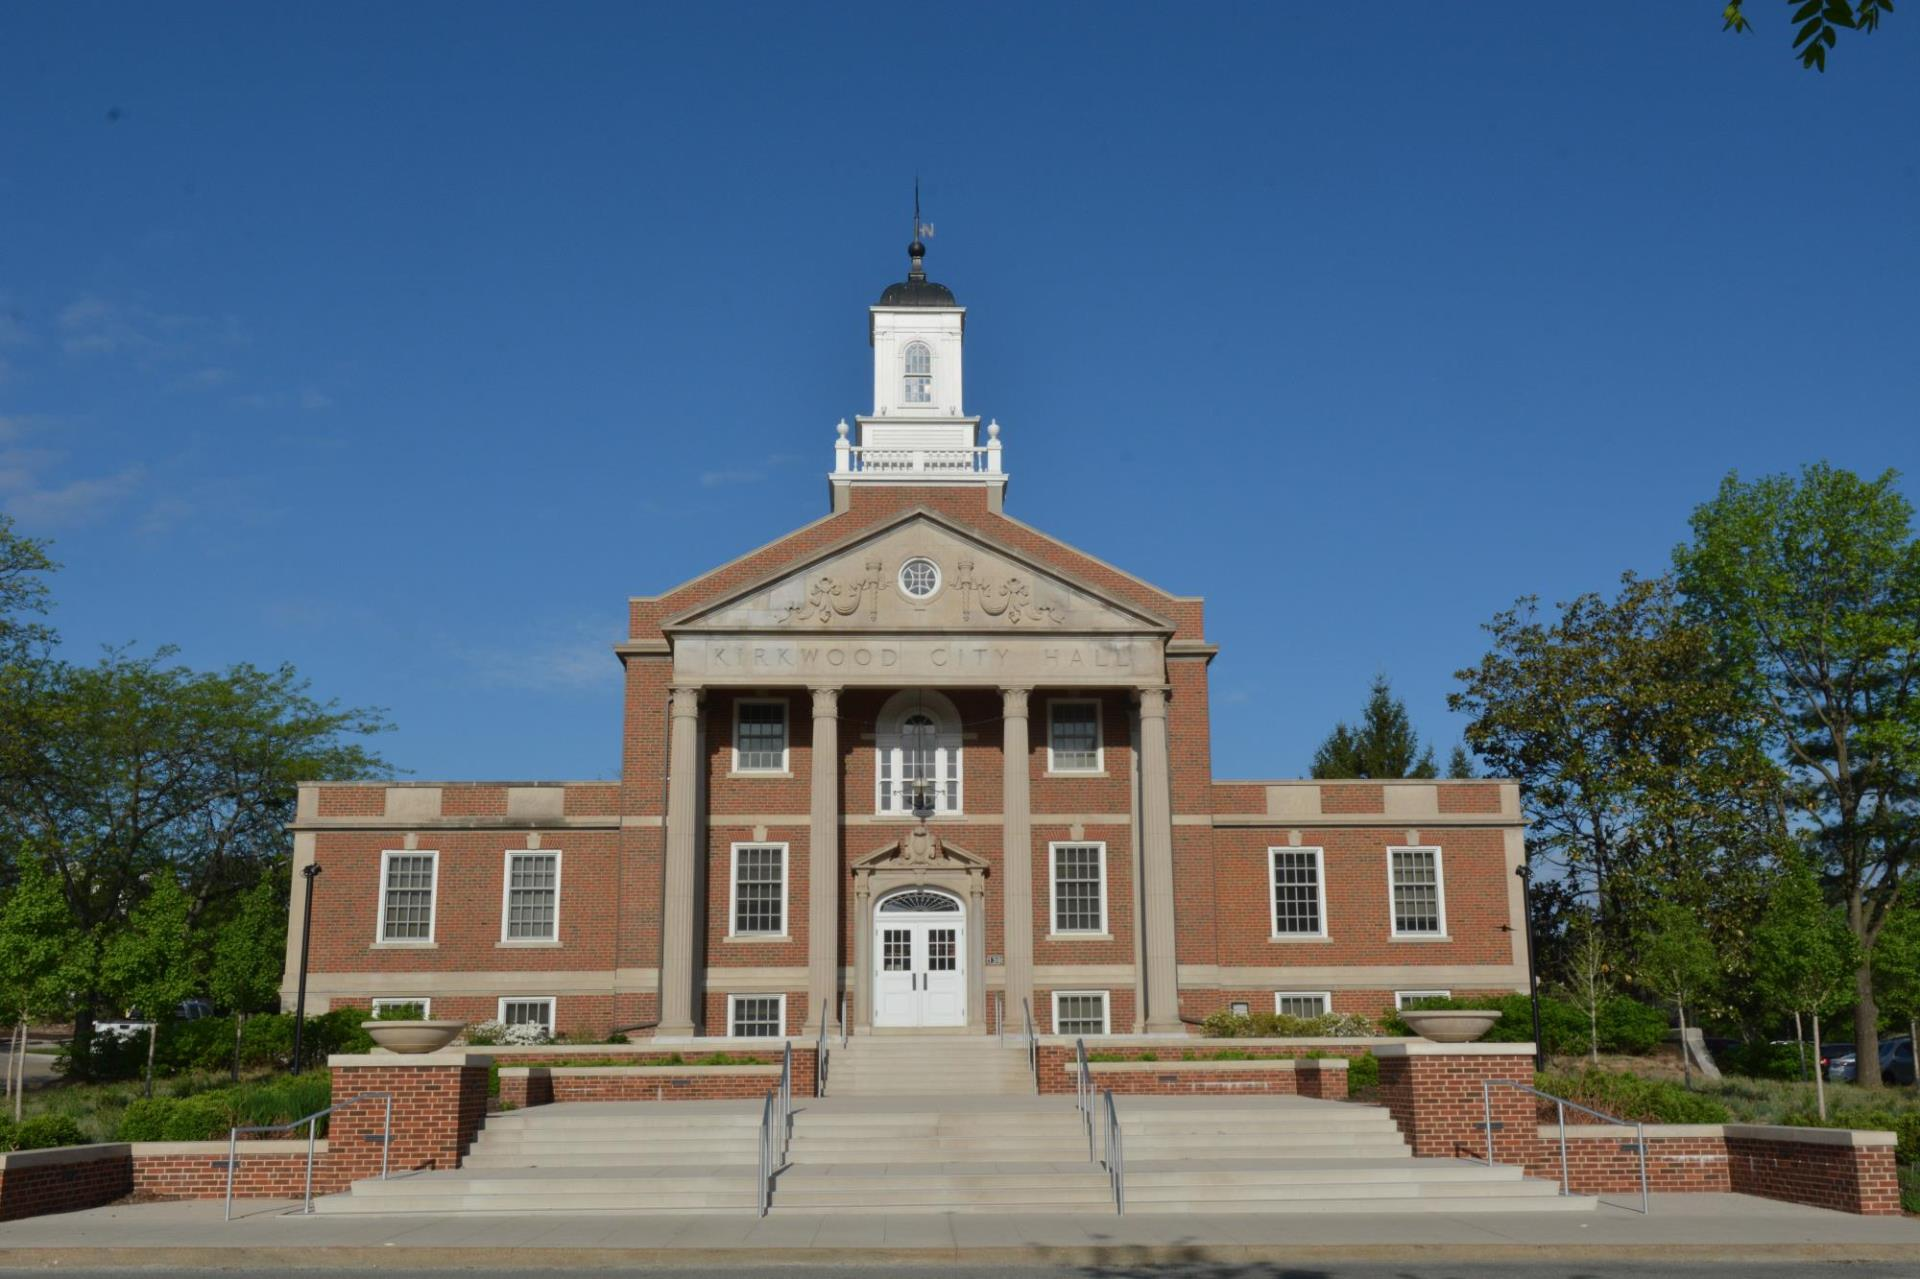 Kirkwood City Hall on a Sunny Day